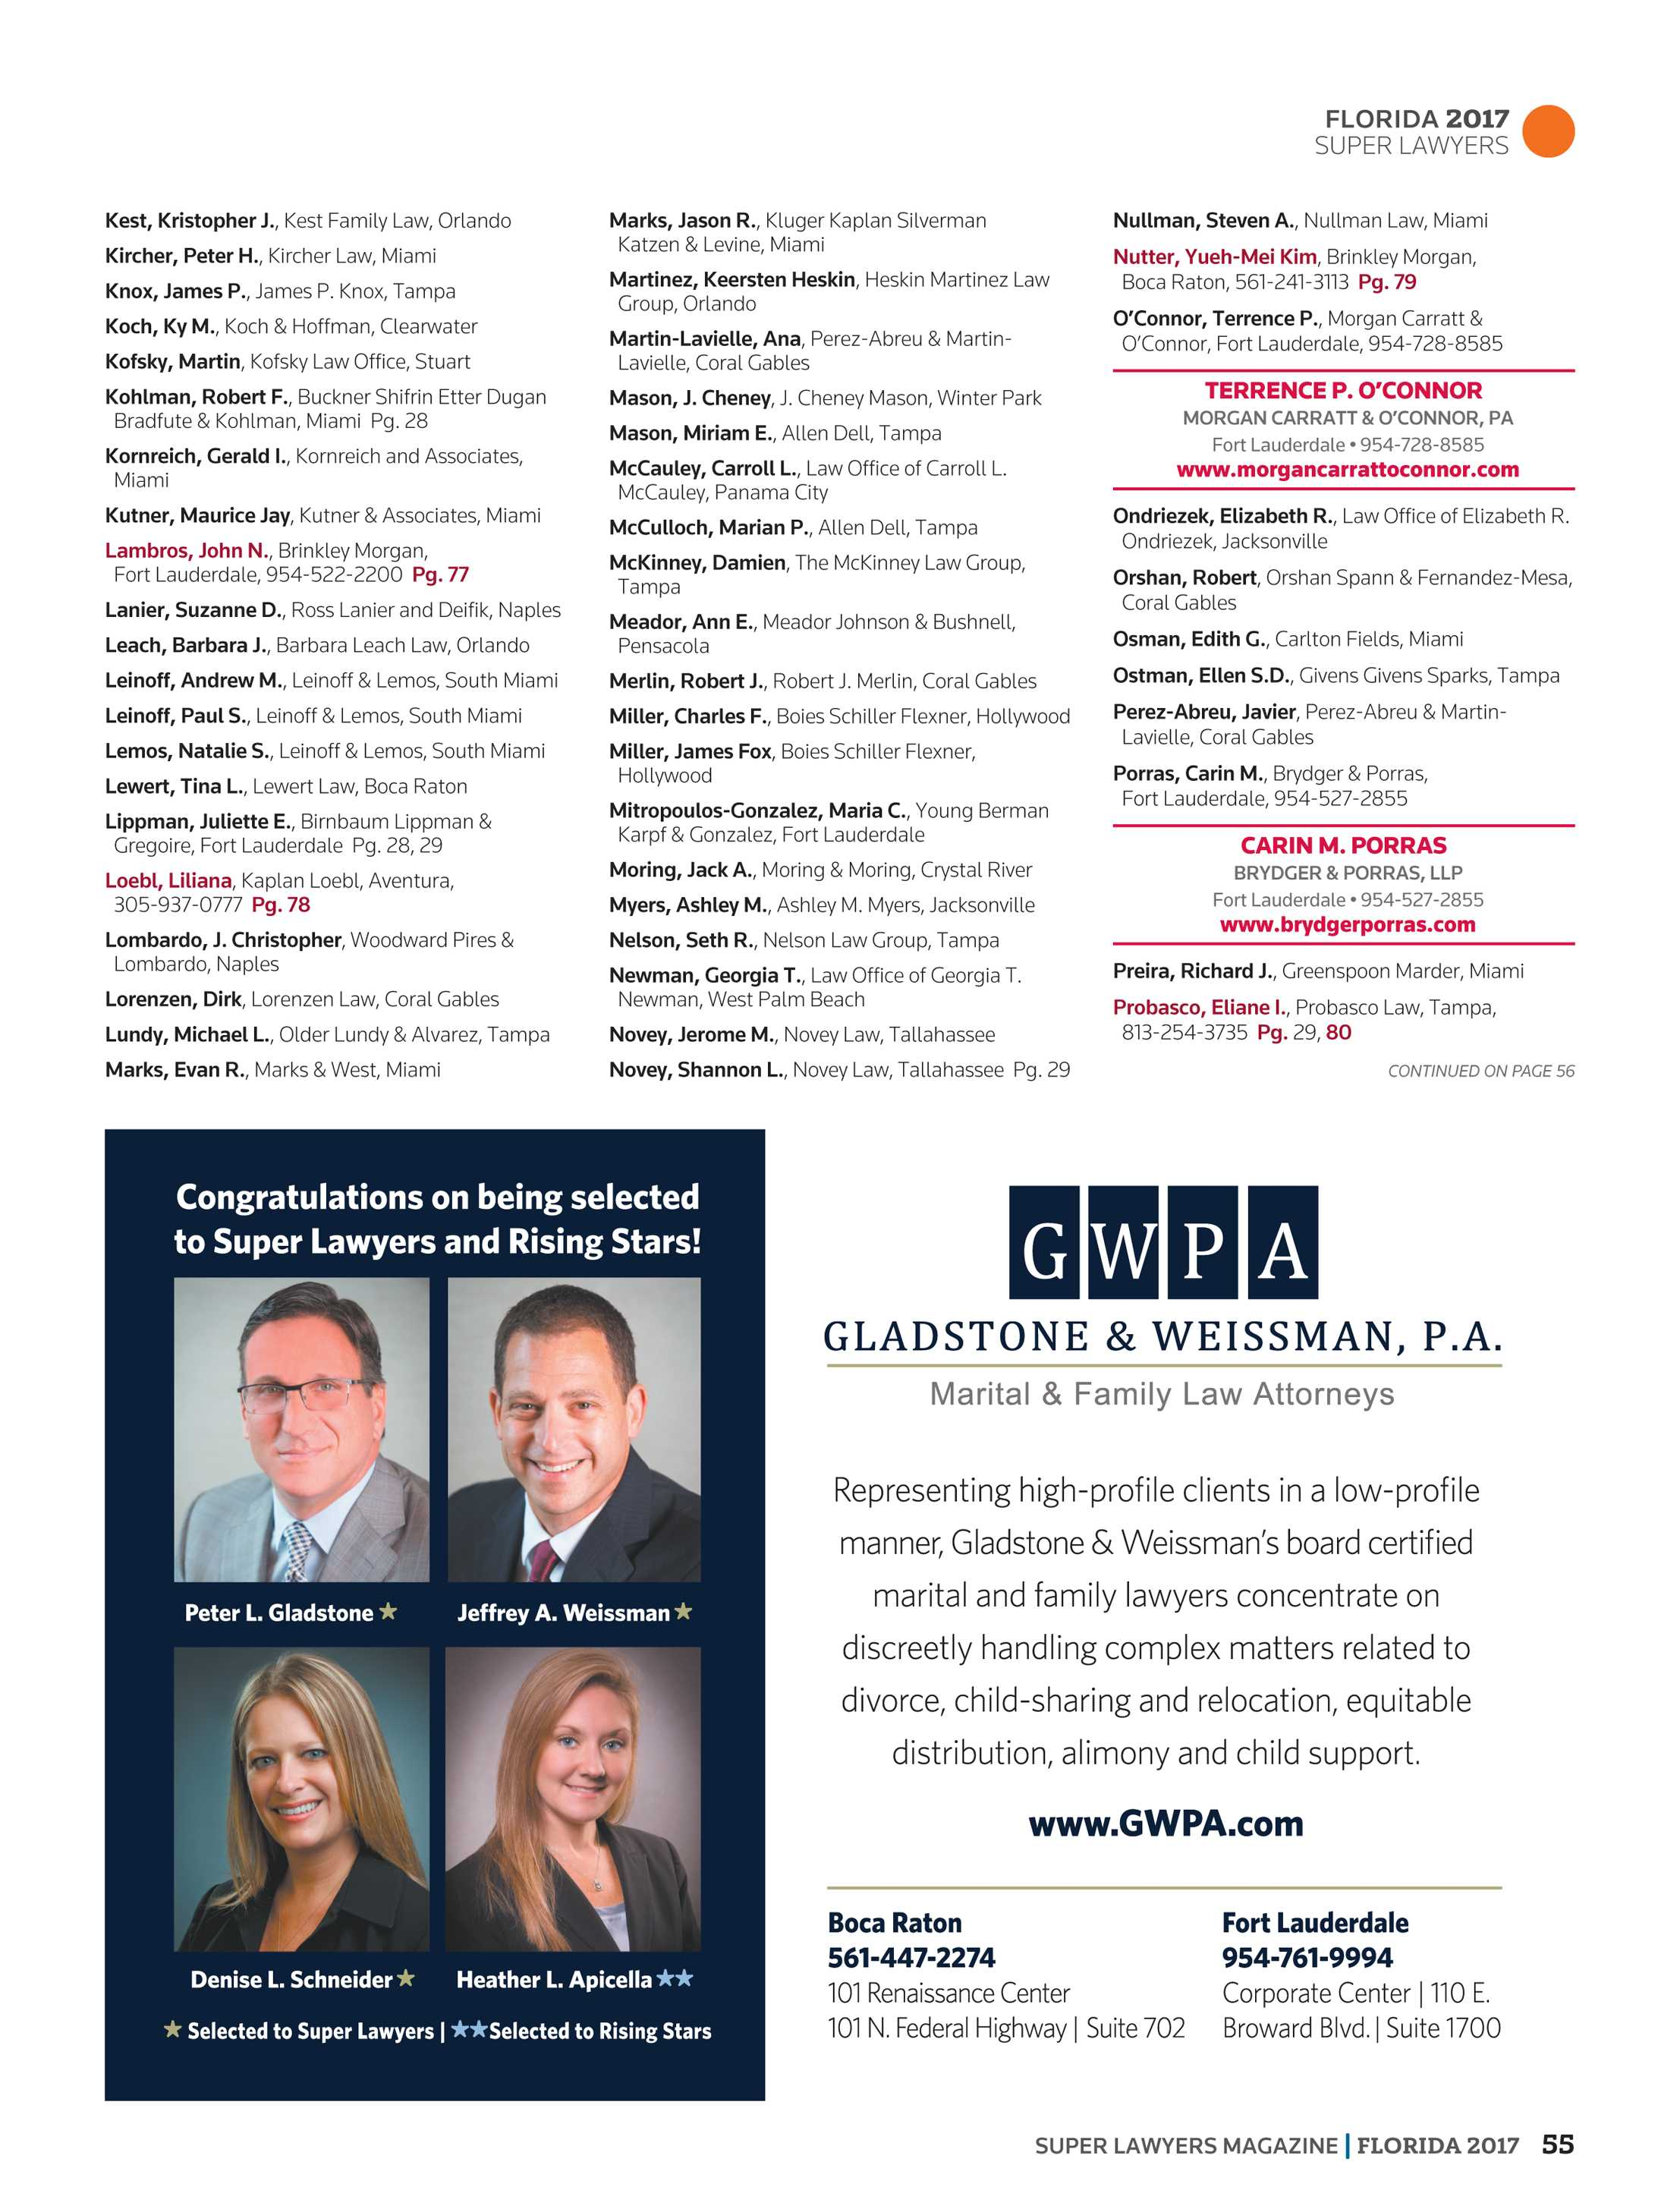 Super Lawyers - Florida 2017 - page 55